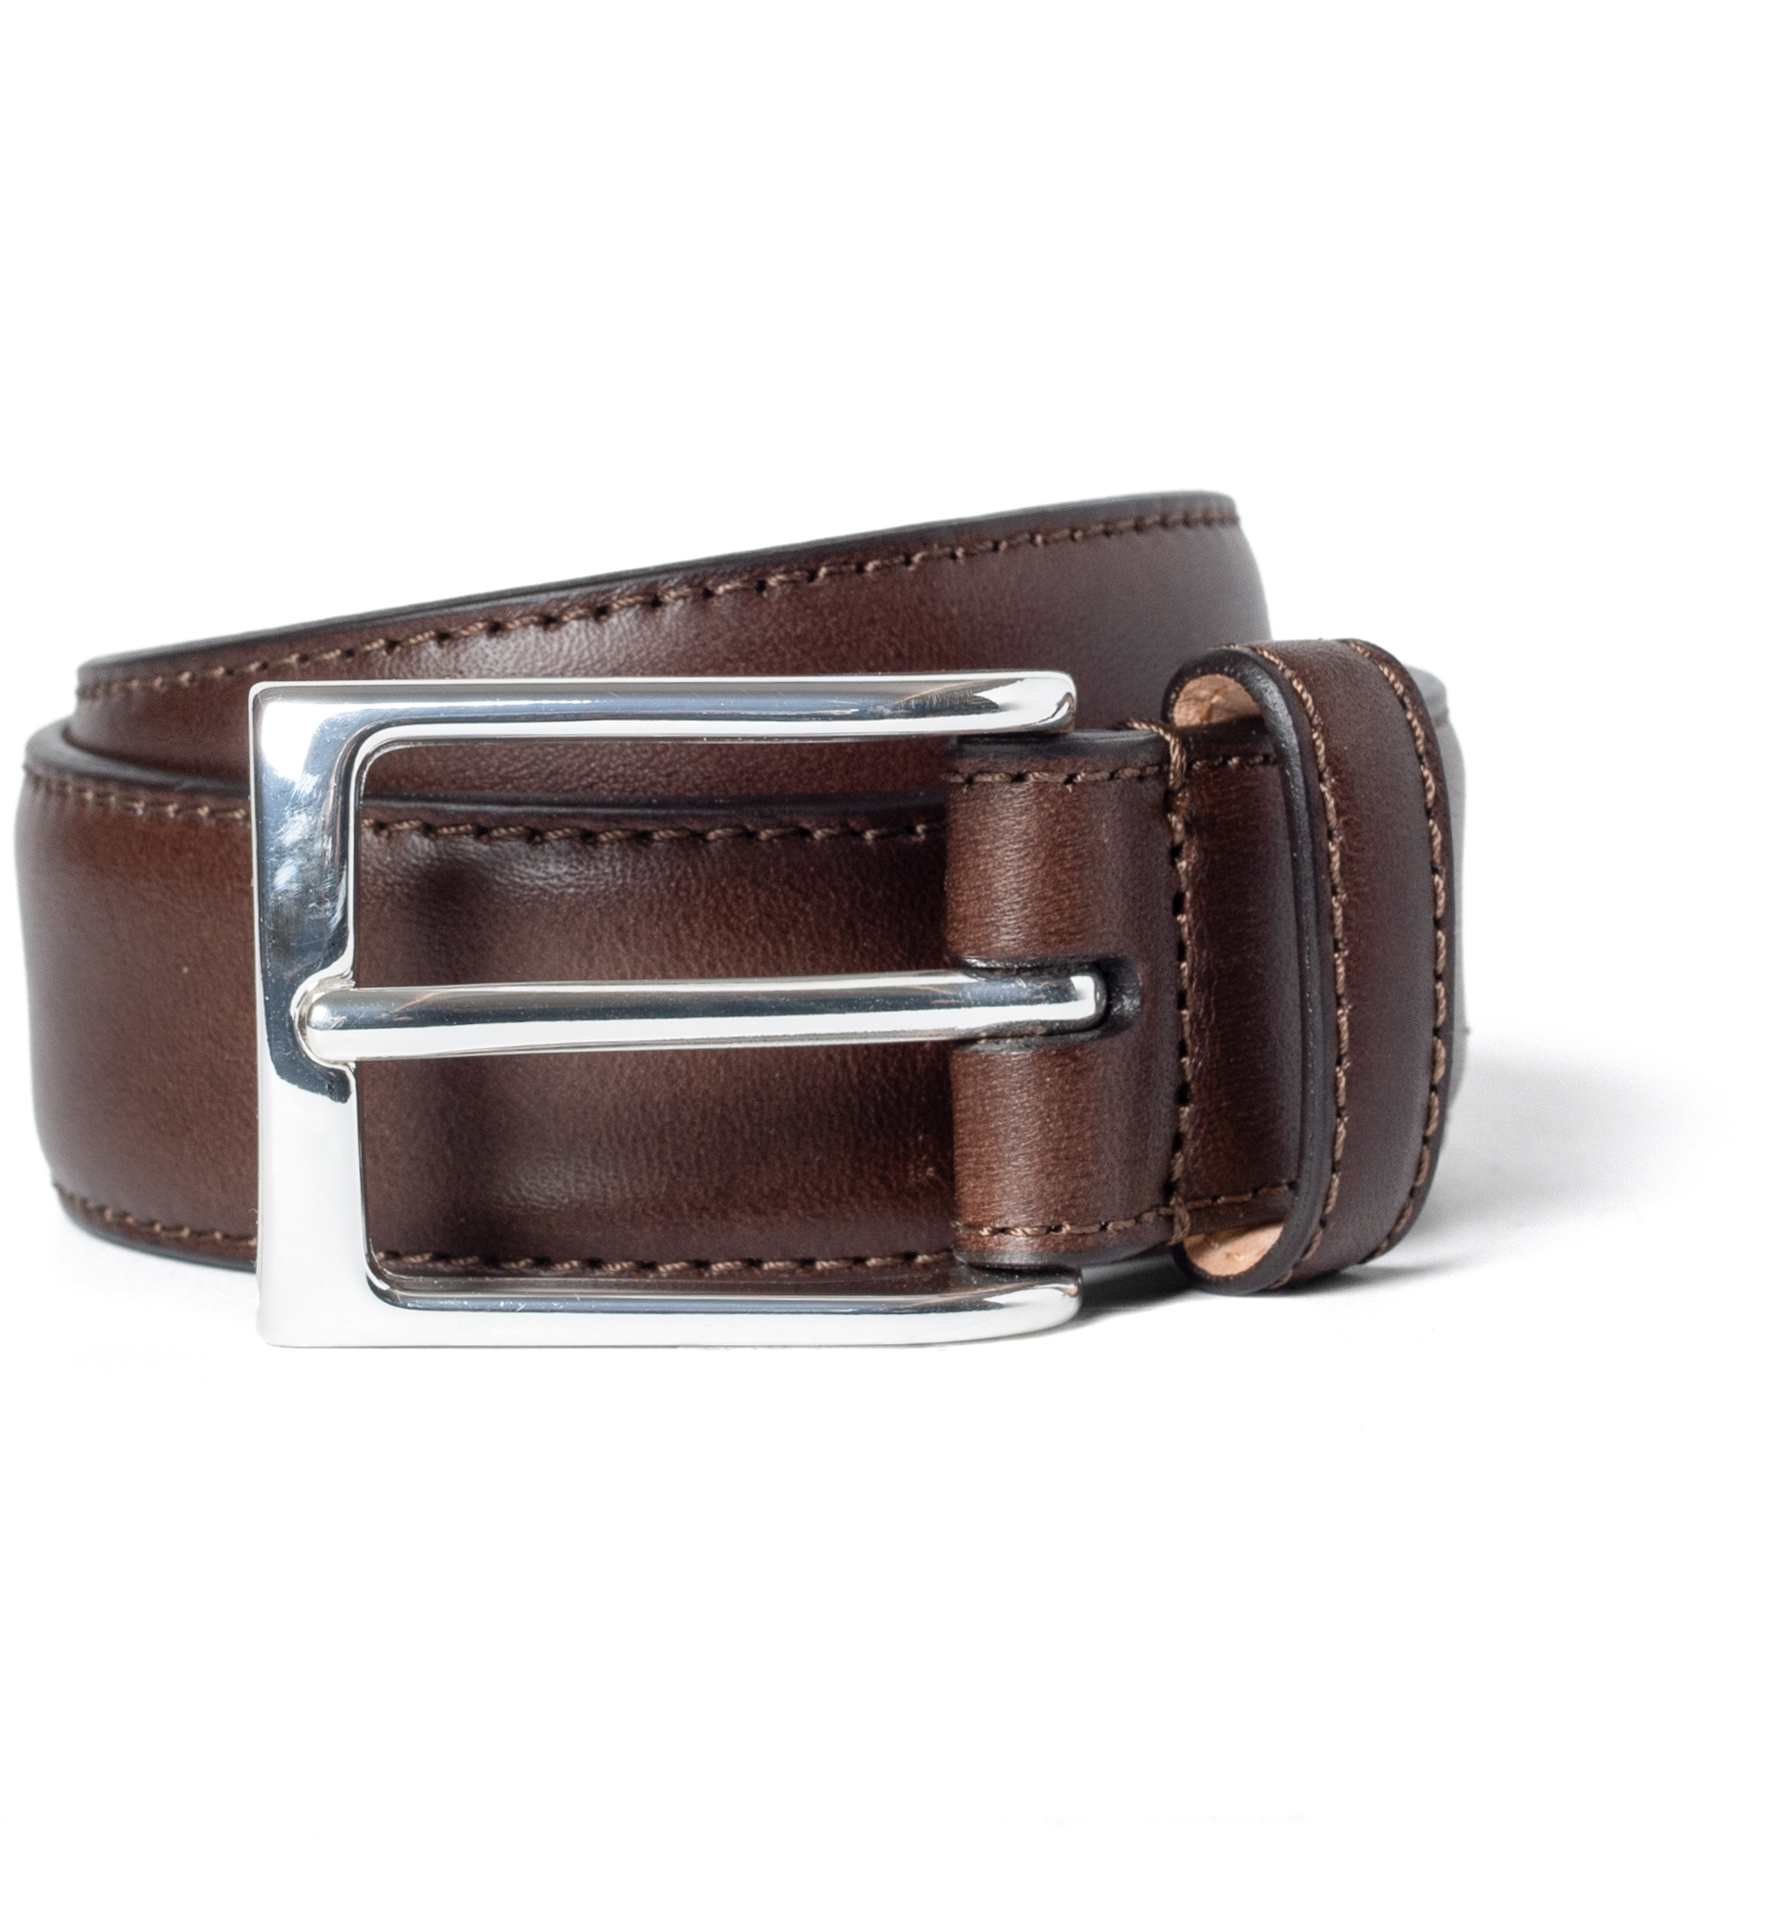 Zoom Image of Walnut Vachetta Leather Dress Belt